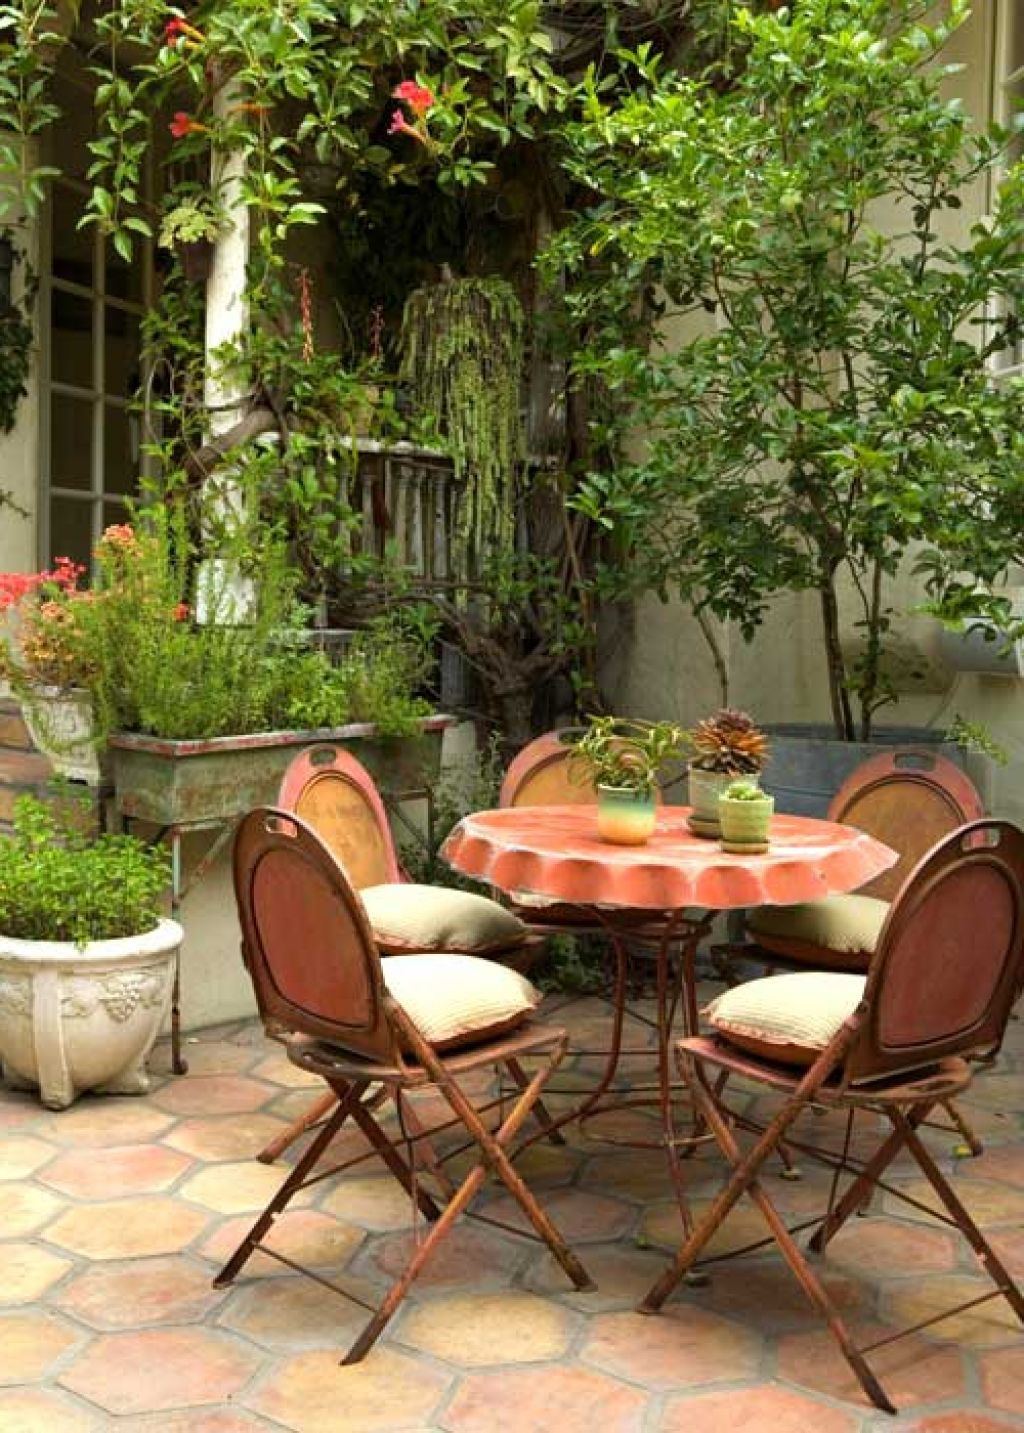 Beautiful patio dining area with rustic metal chairs and small round table best for small spaces.